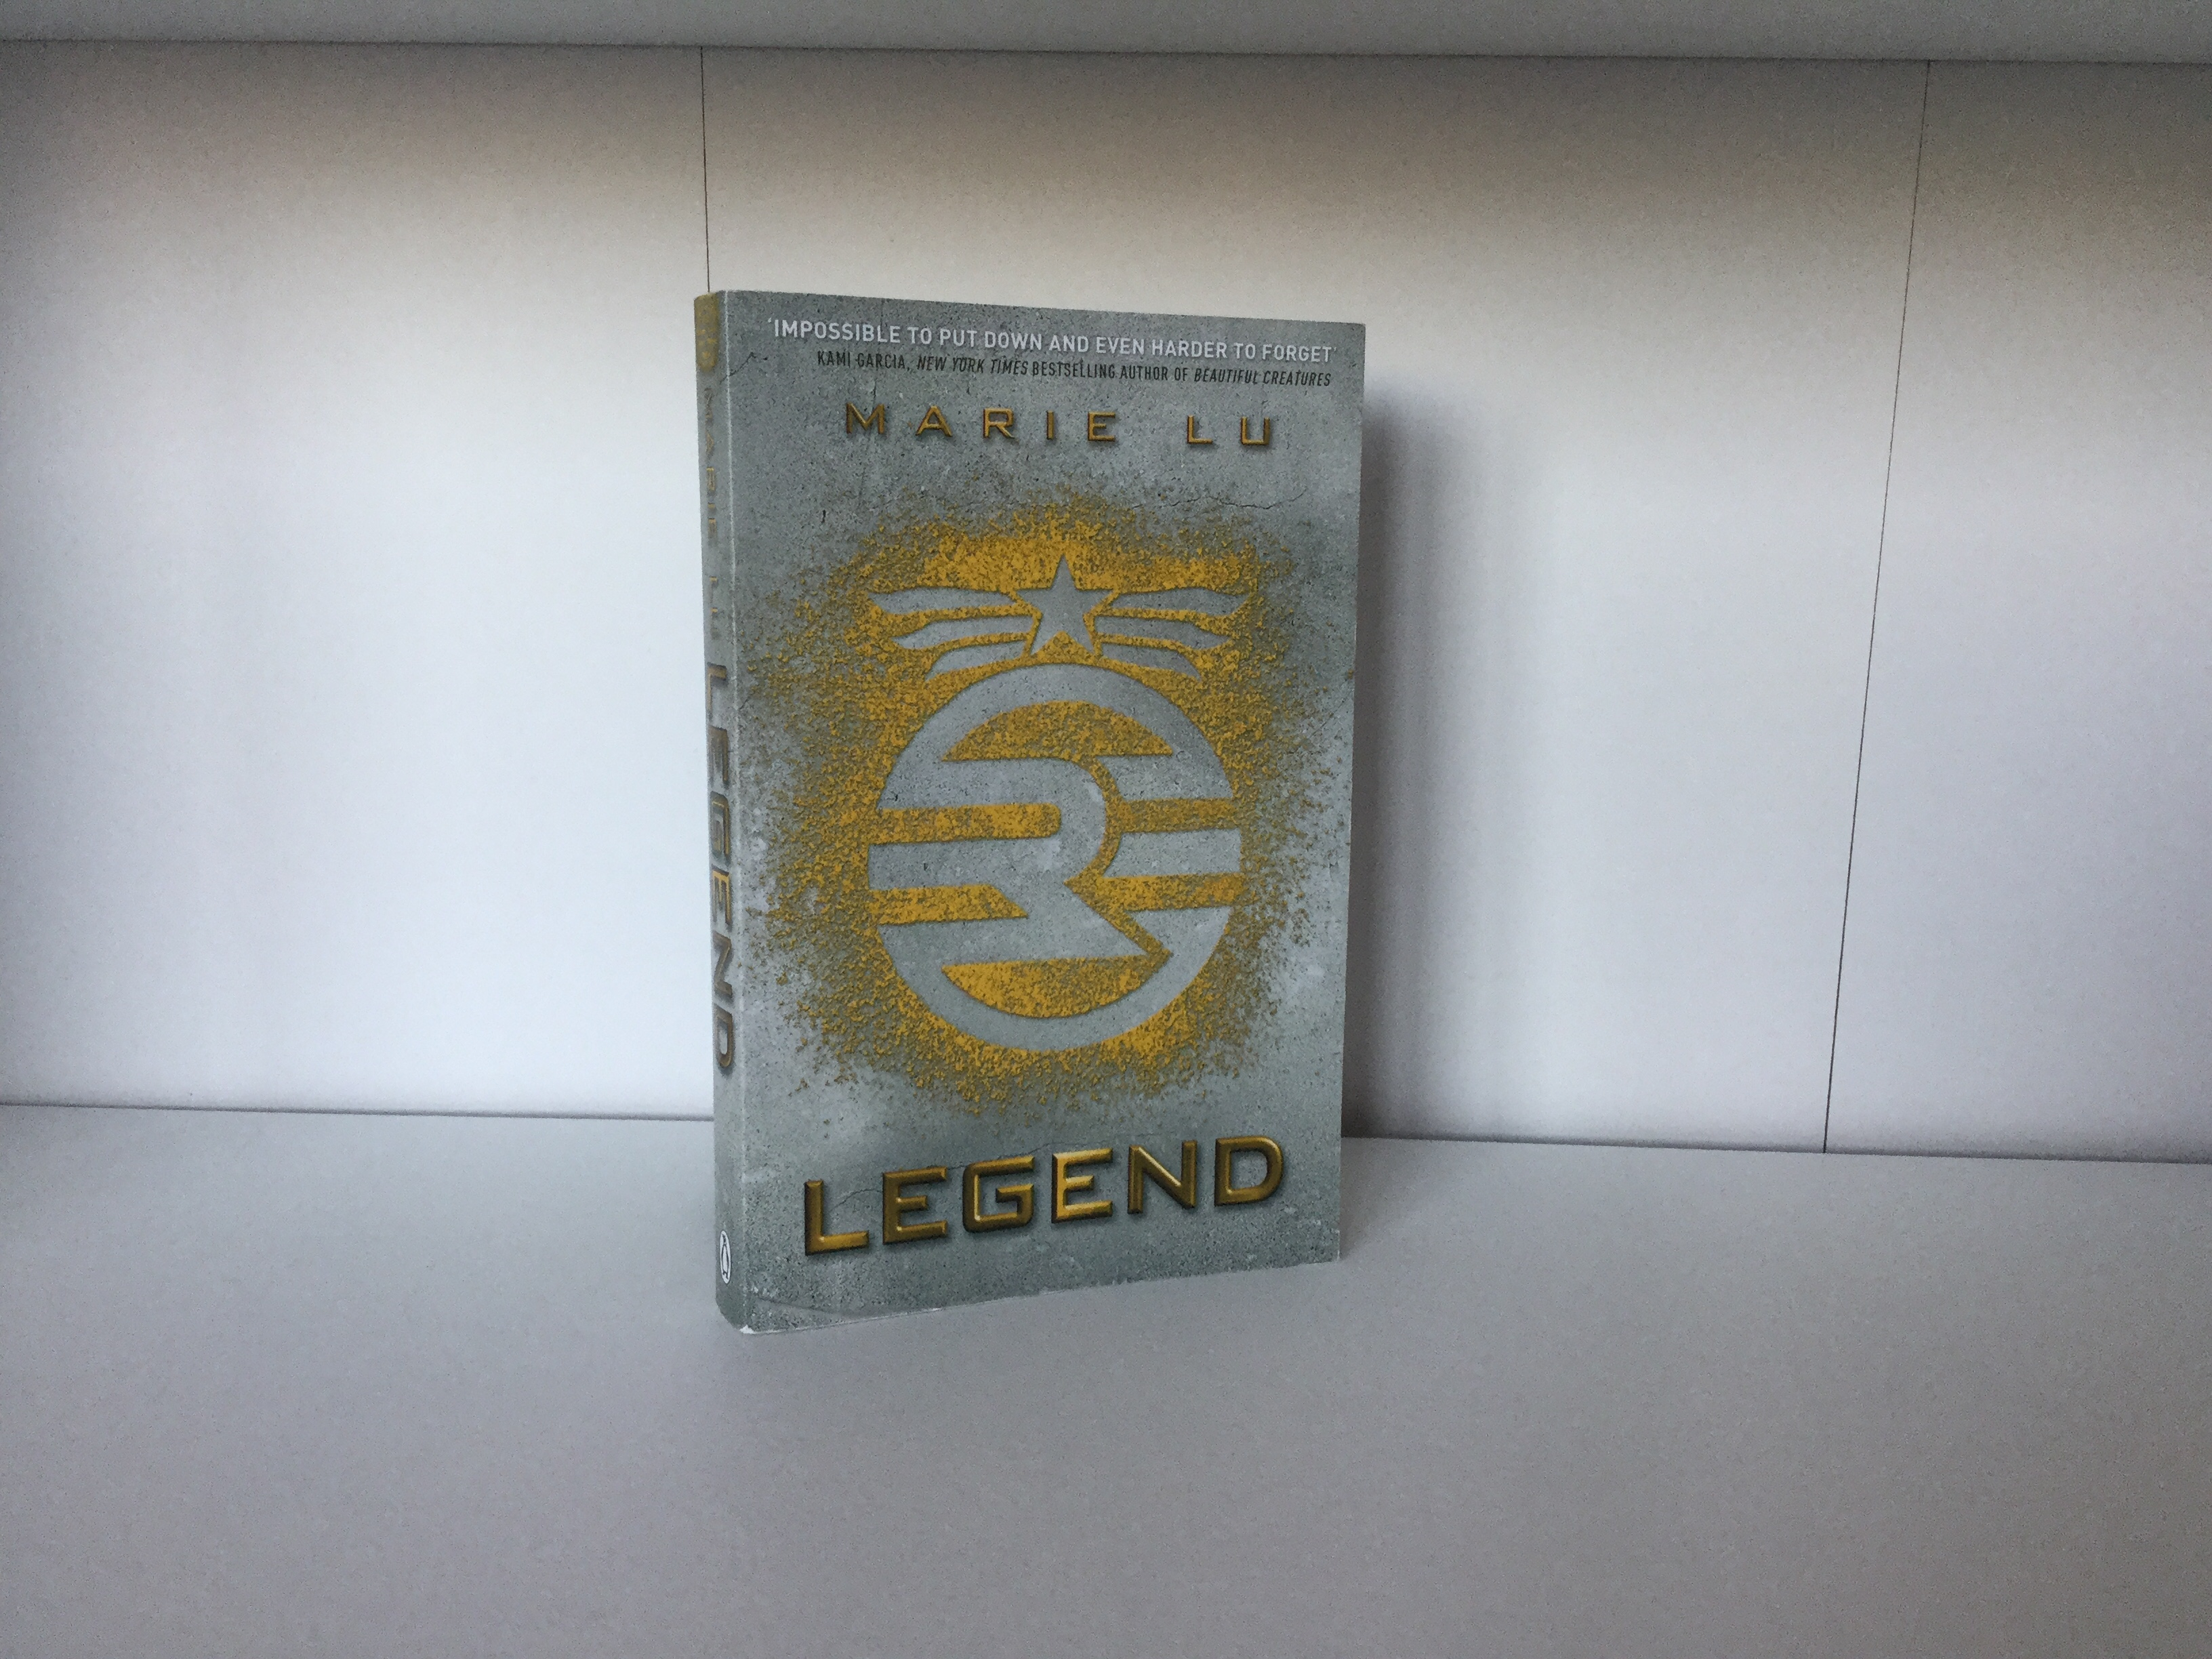 The cover of Legend by Marie Lu